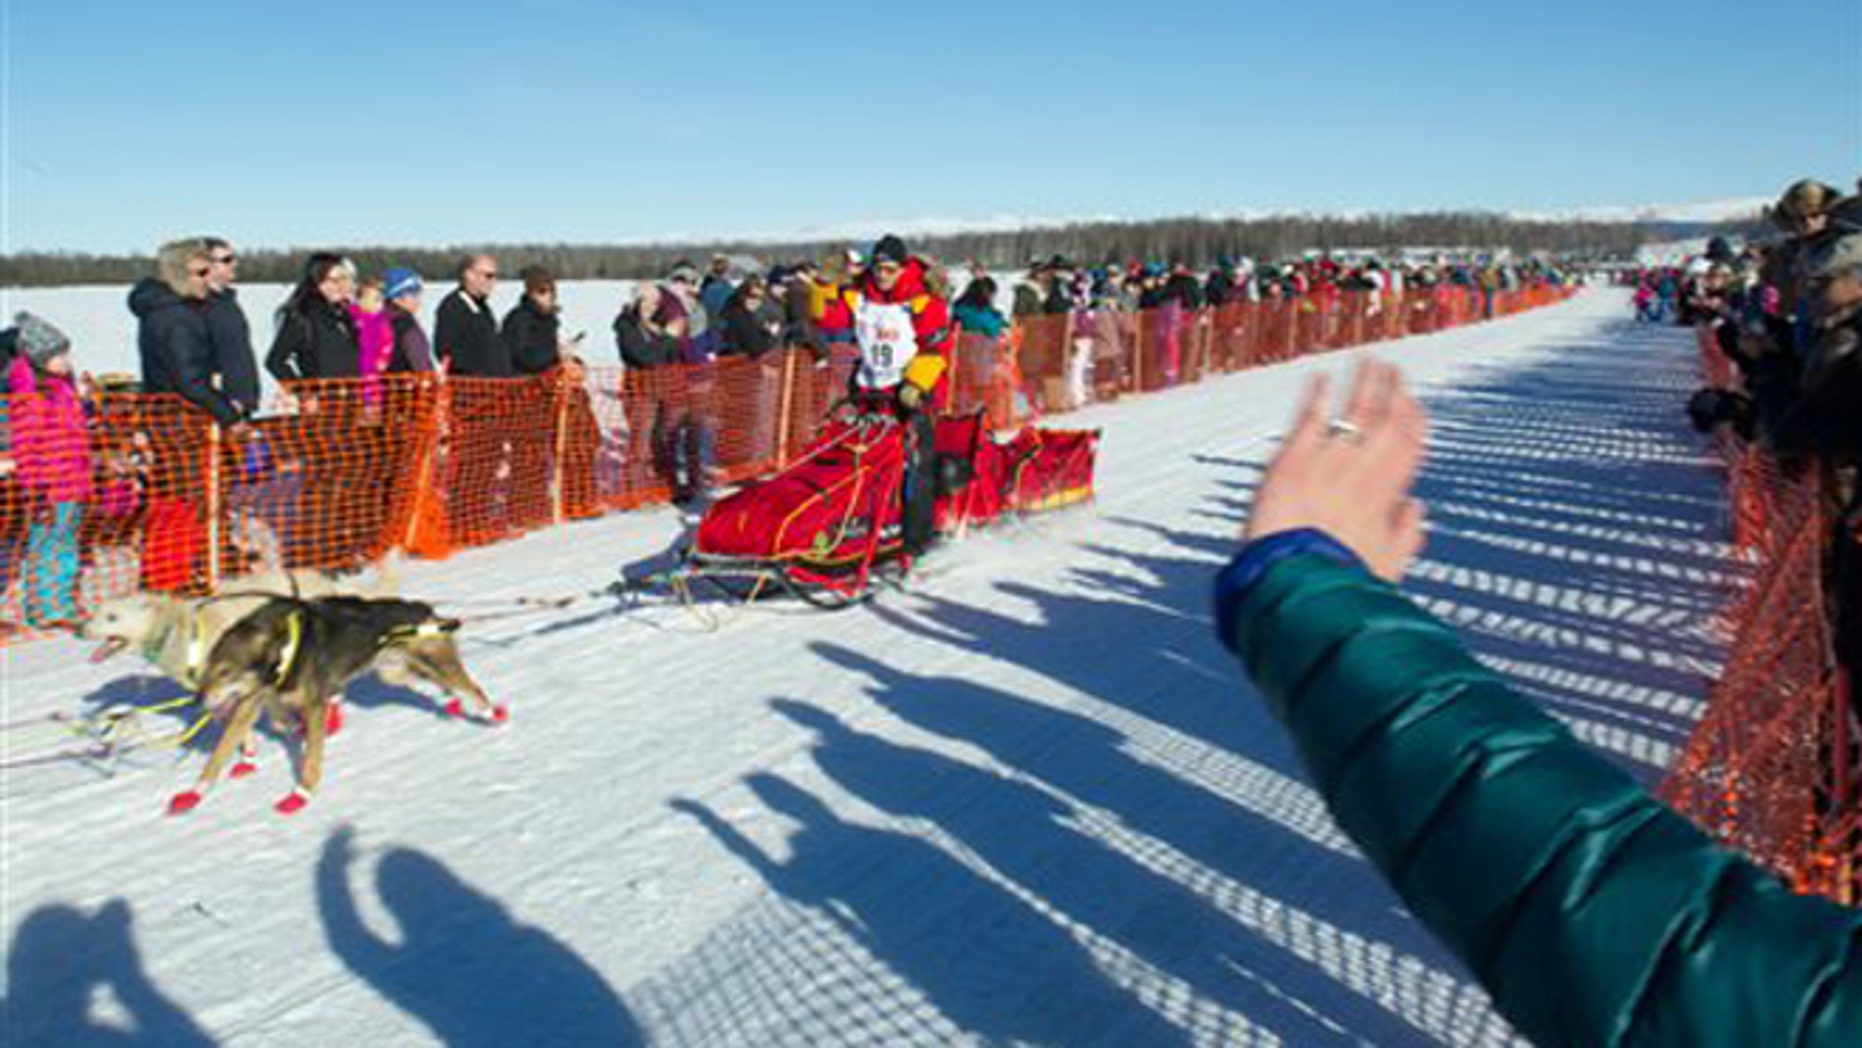 Iditarod Trail Sled Dog Race musher Mitch Seavey begins his race to Nome amongst a crowd of spectators Sunday, March 6, 2016 in Willow, Alaska.  (AP Photo/Michael Dinneen)